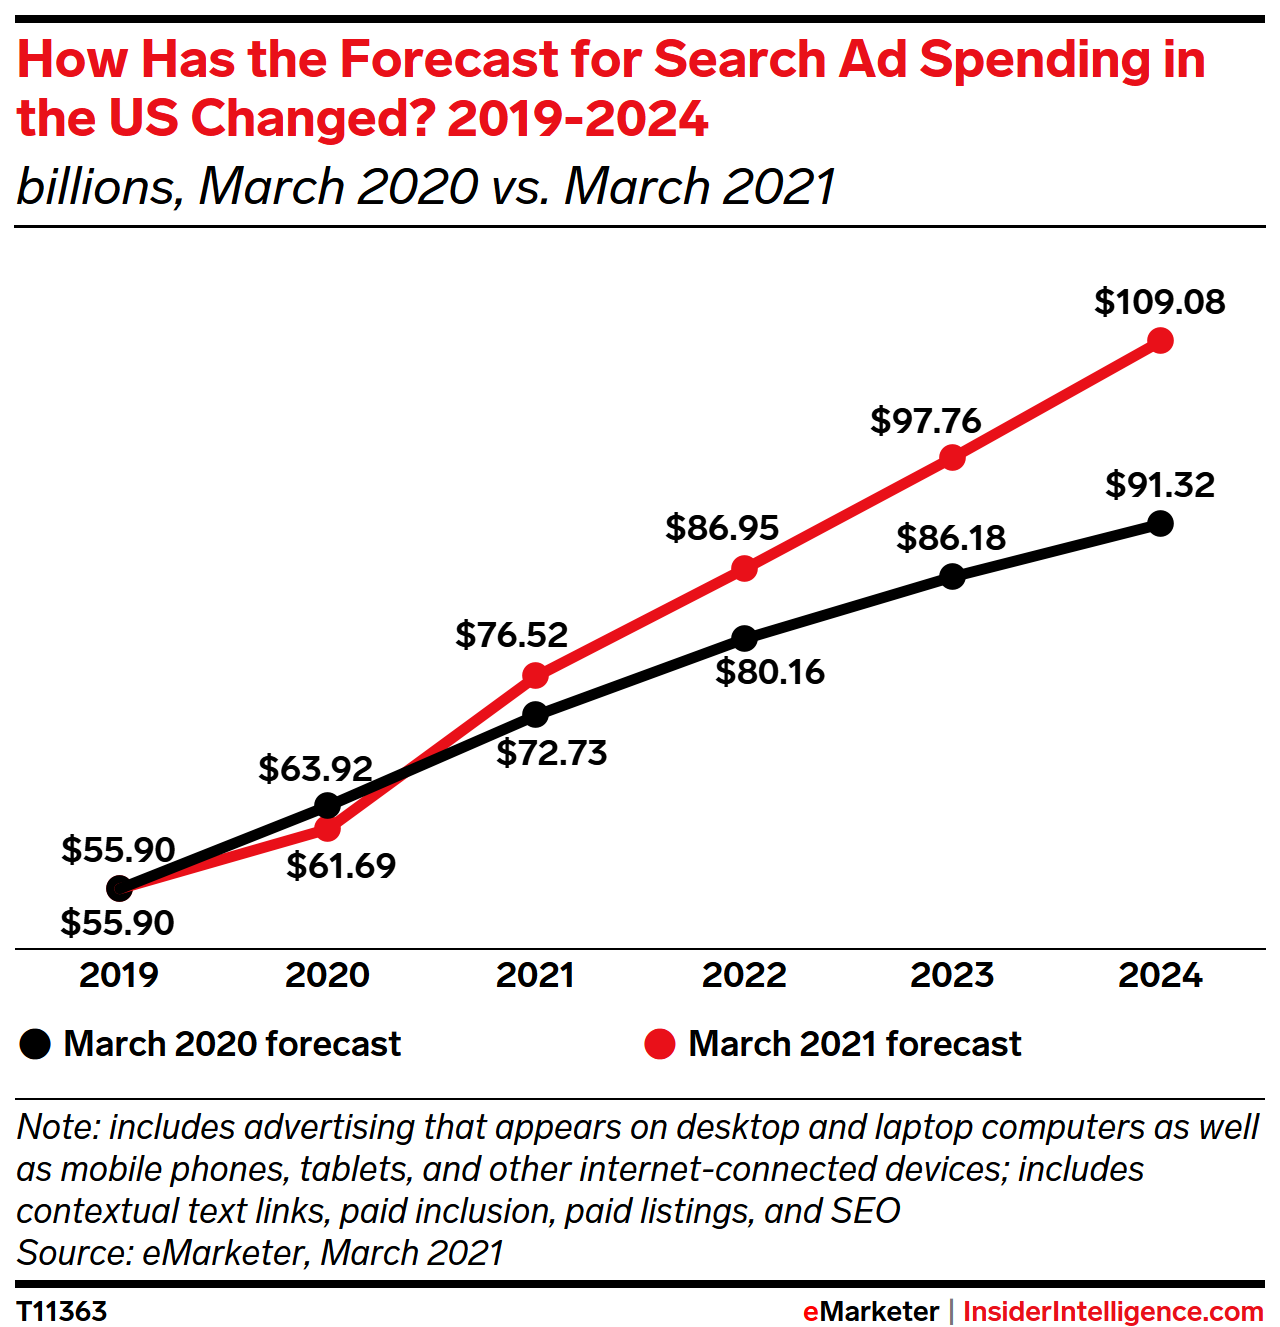 How Has the Forecast for Search Ad Spending in the US Changed? 2019-2024 (billions)